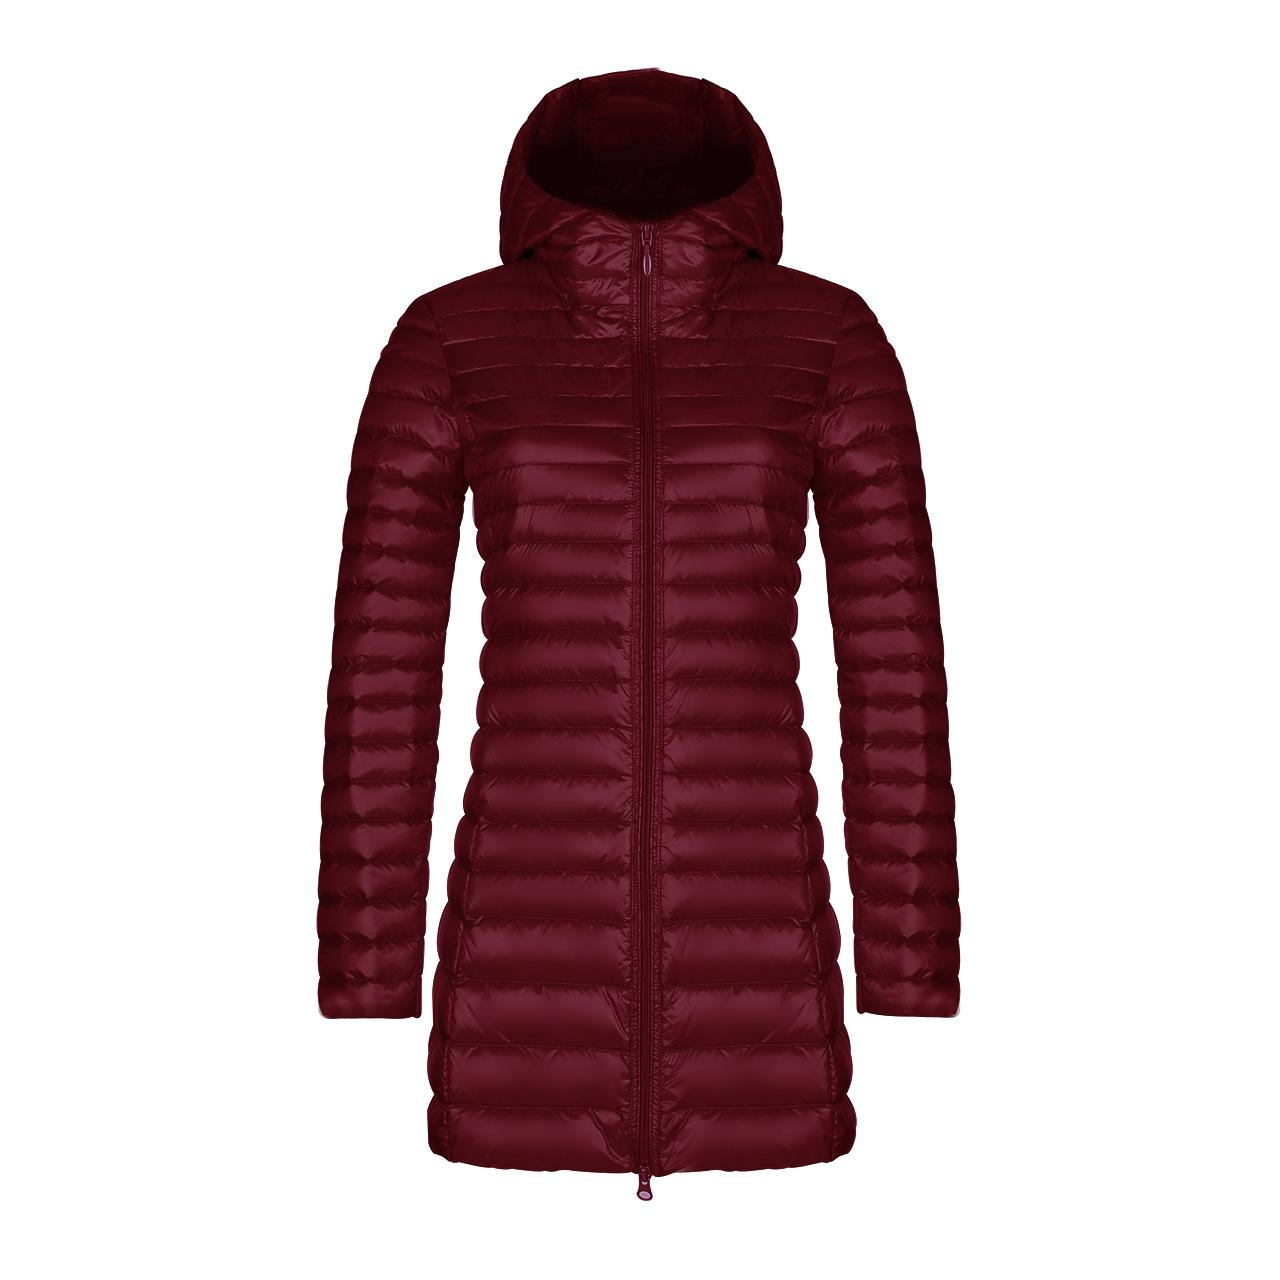 Winter Hooded Down Jackets Women Down Coats Elegant Warm Jacket Ultra Light 90% Duck Hood Down Parka Female